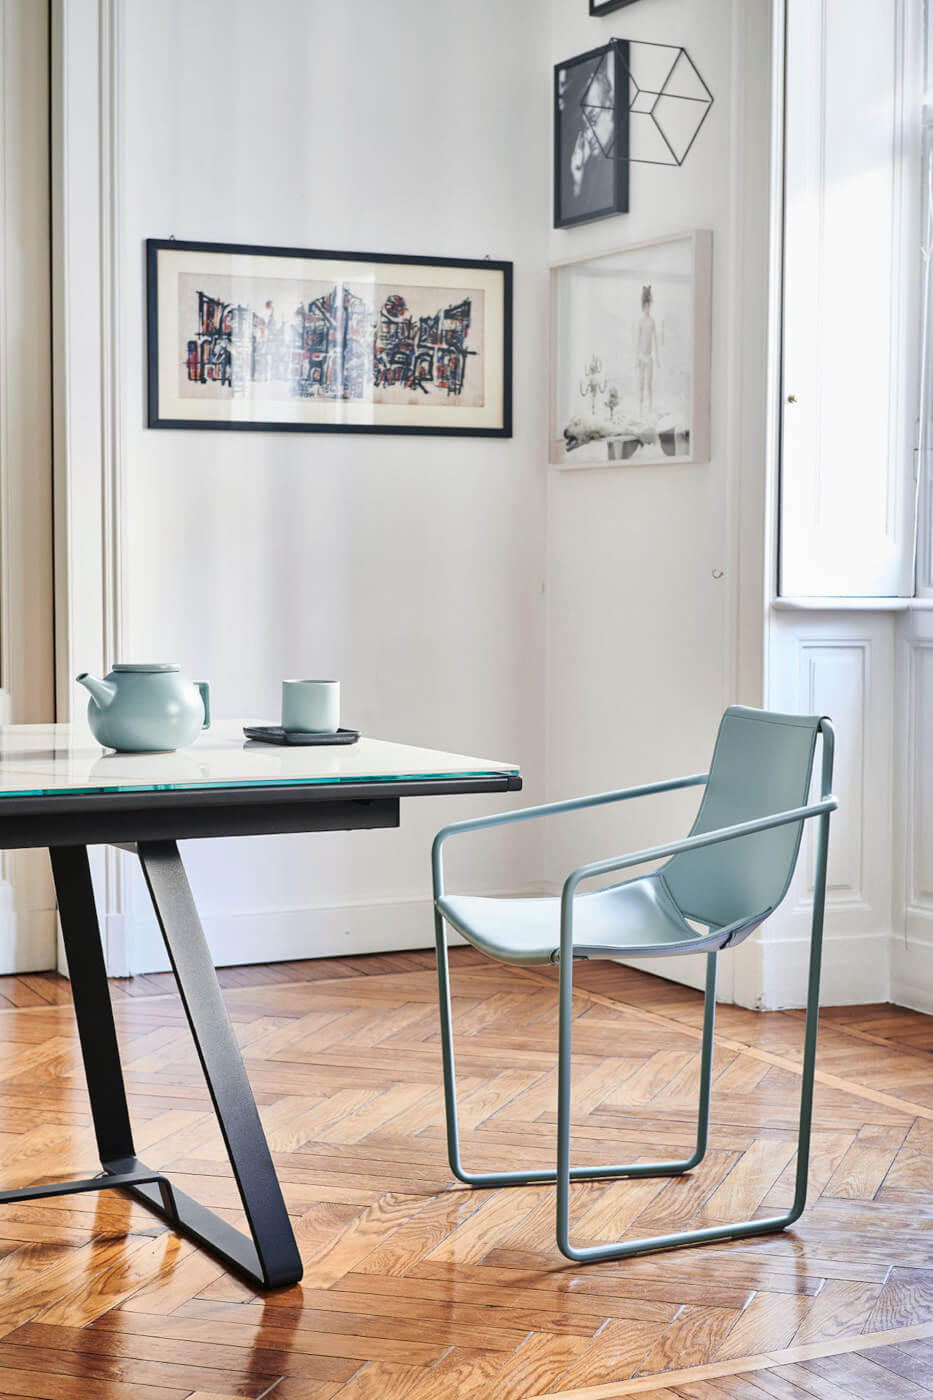 Apelle armchair with light blue hide seat and light blue metal legs